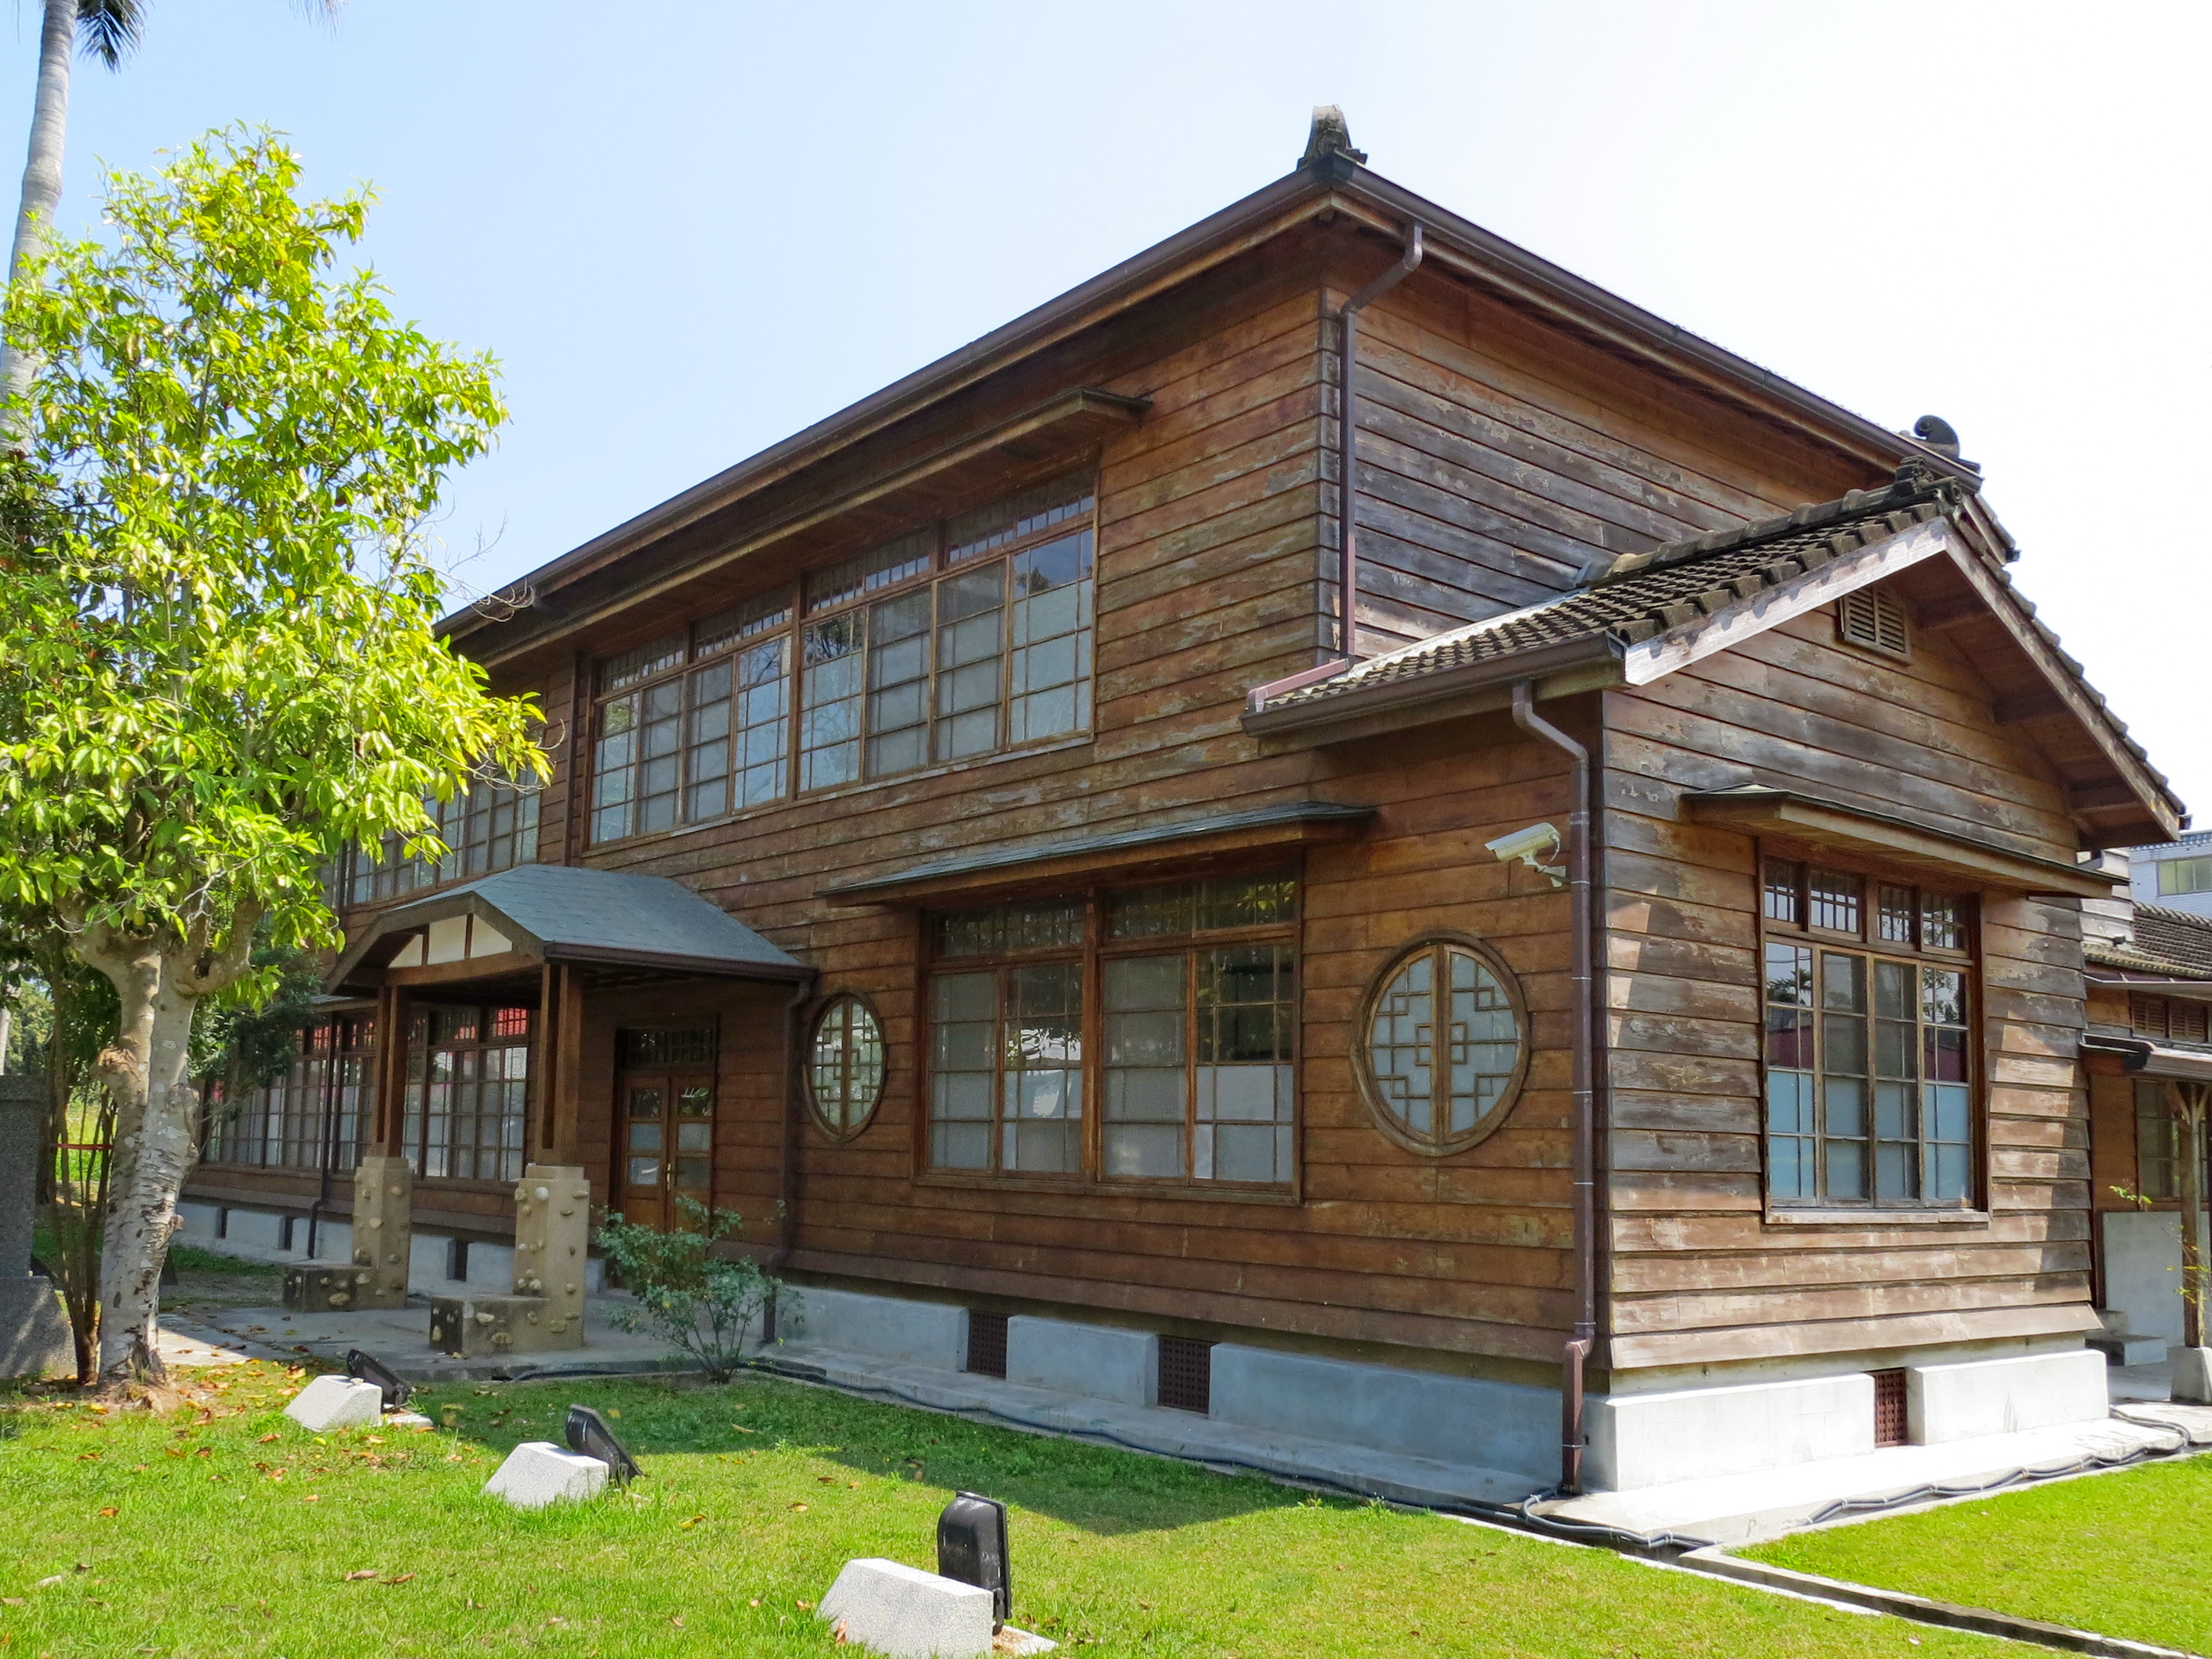 File national radio museum the japanese style hospitality house west side taiwan - Japanese style home ...